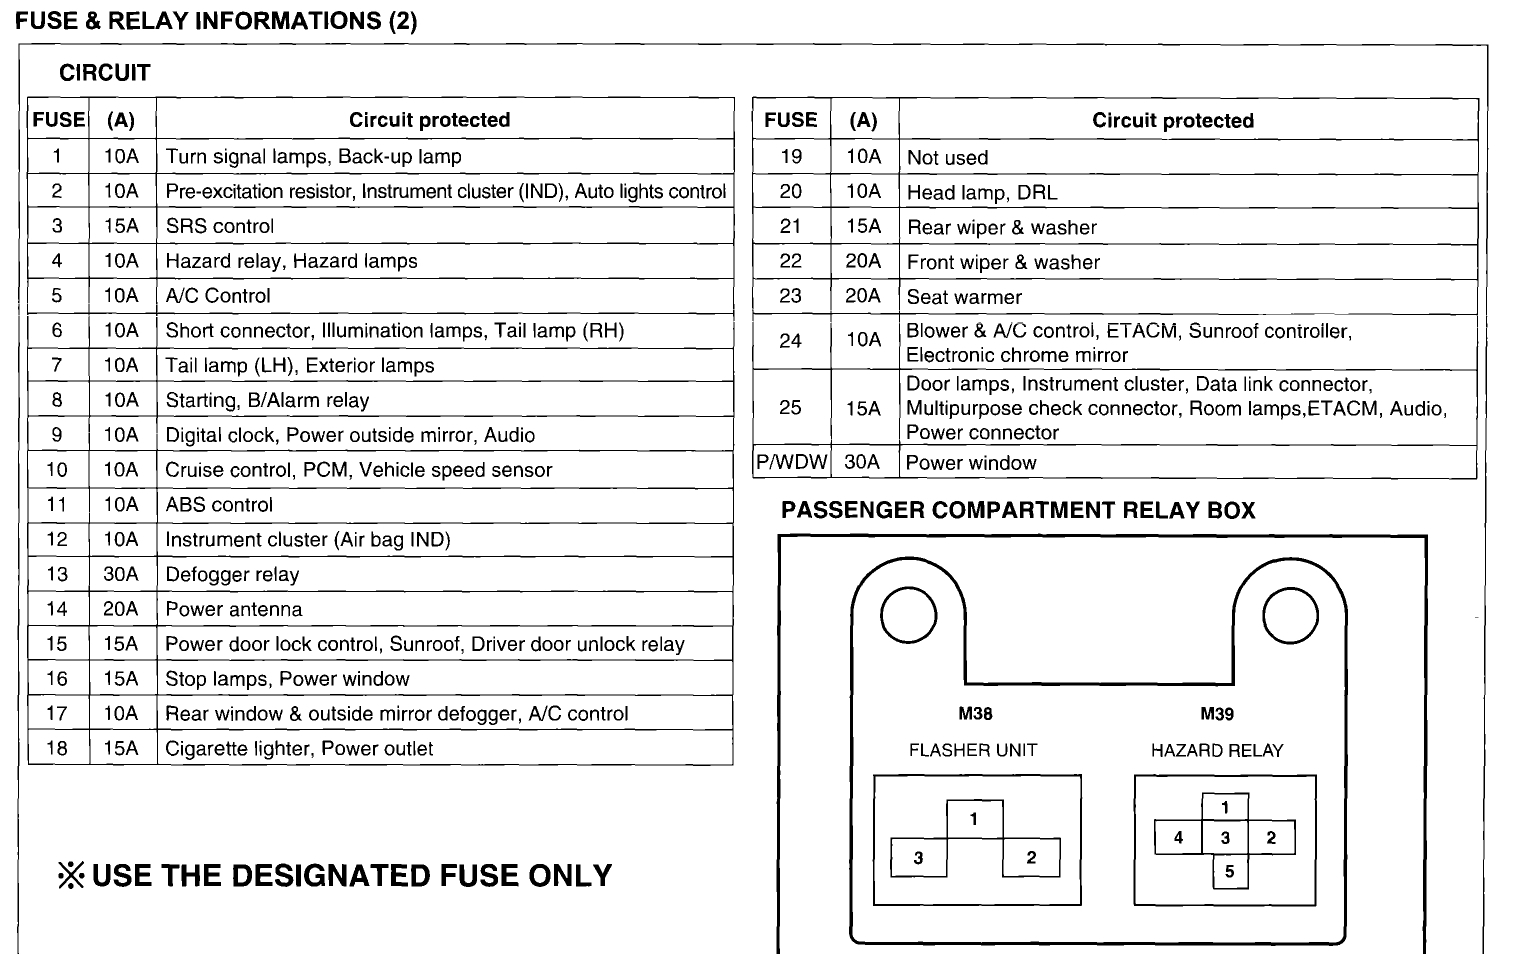 original signal light wiring diagram 2002 hyundai elantra 2006 hyundai 2002 hyundai xg350 fuse box diagram at gsmx.co